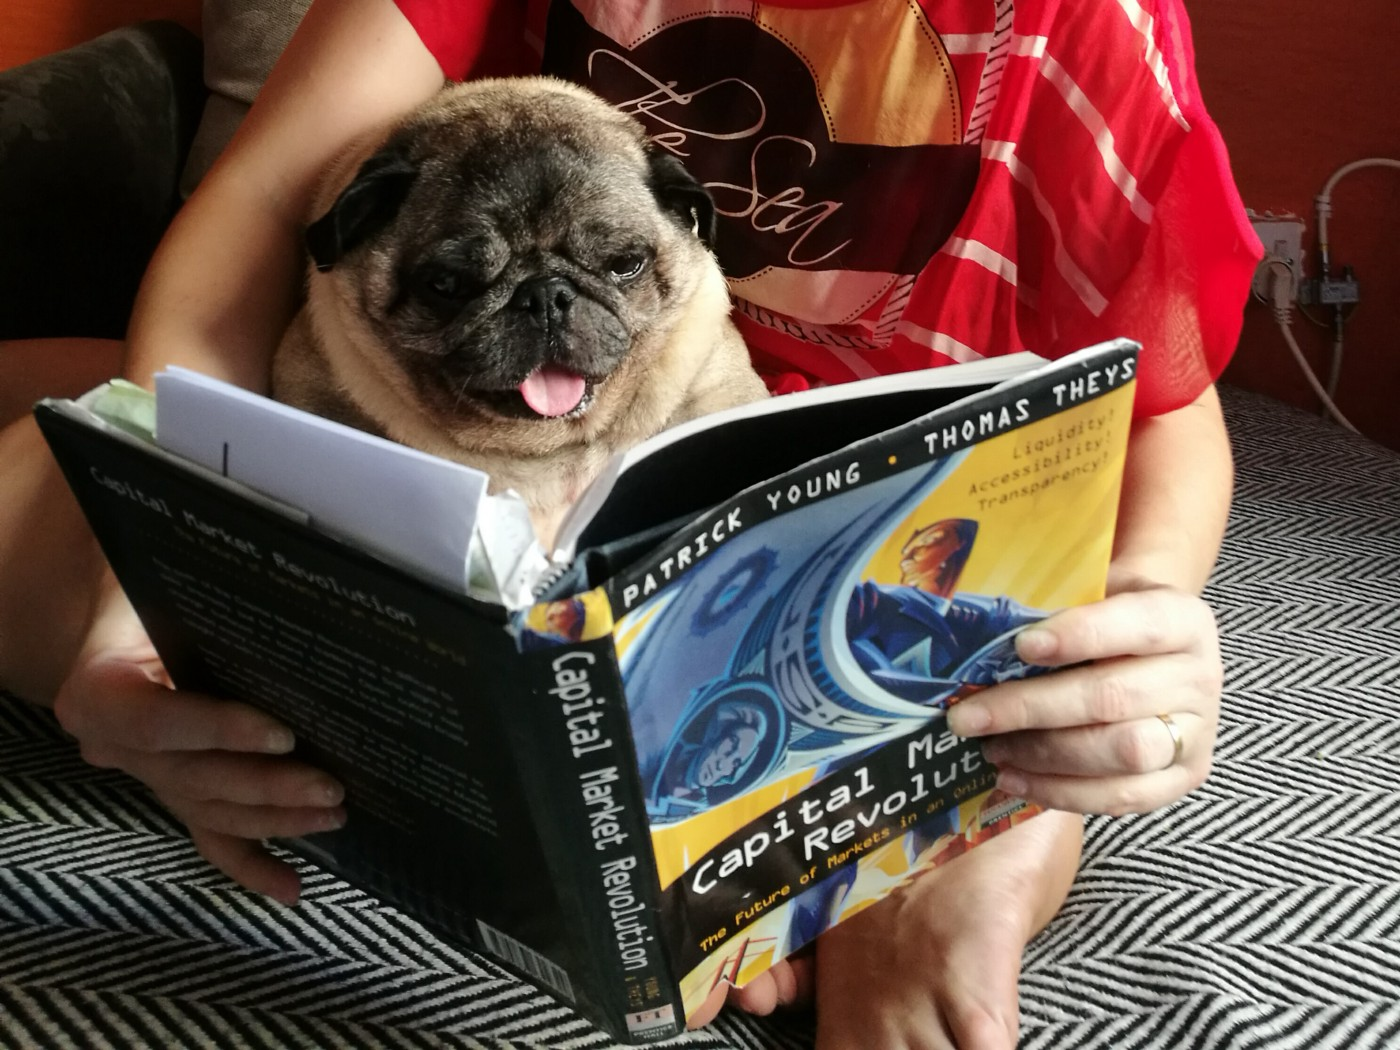 """Toby reading my first book """"Capital Market Revolution!"""" in preparation for his appearances on IPO-Vid."""